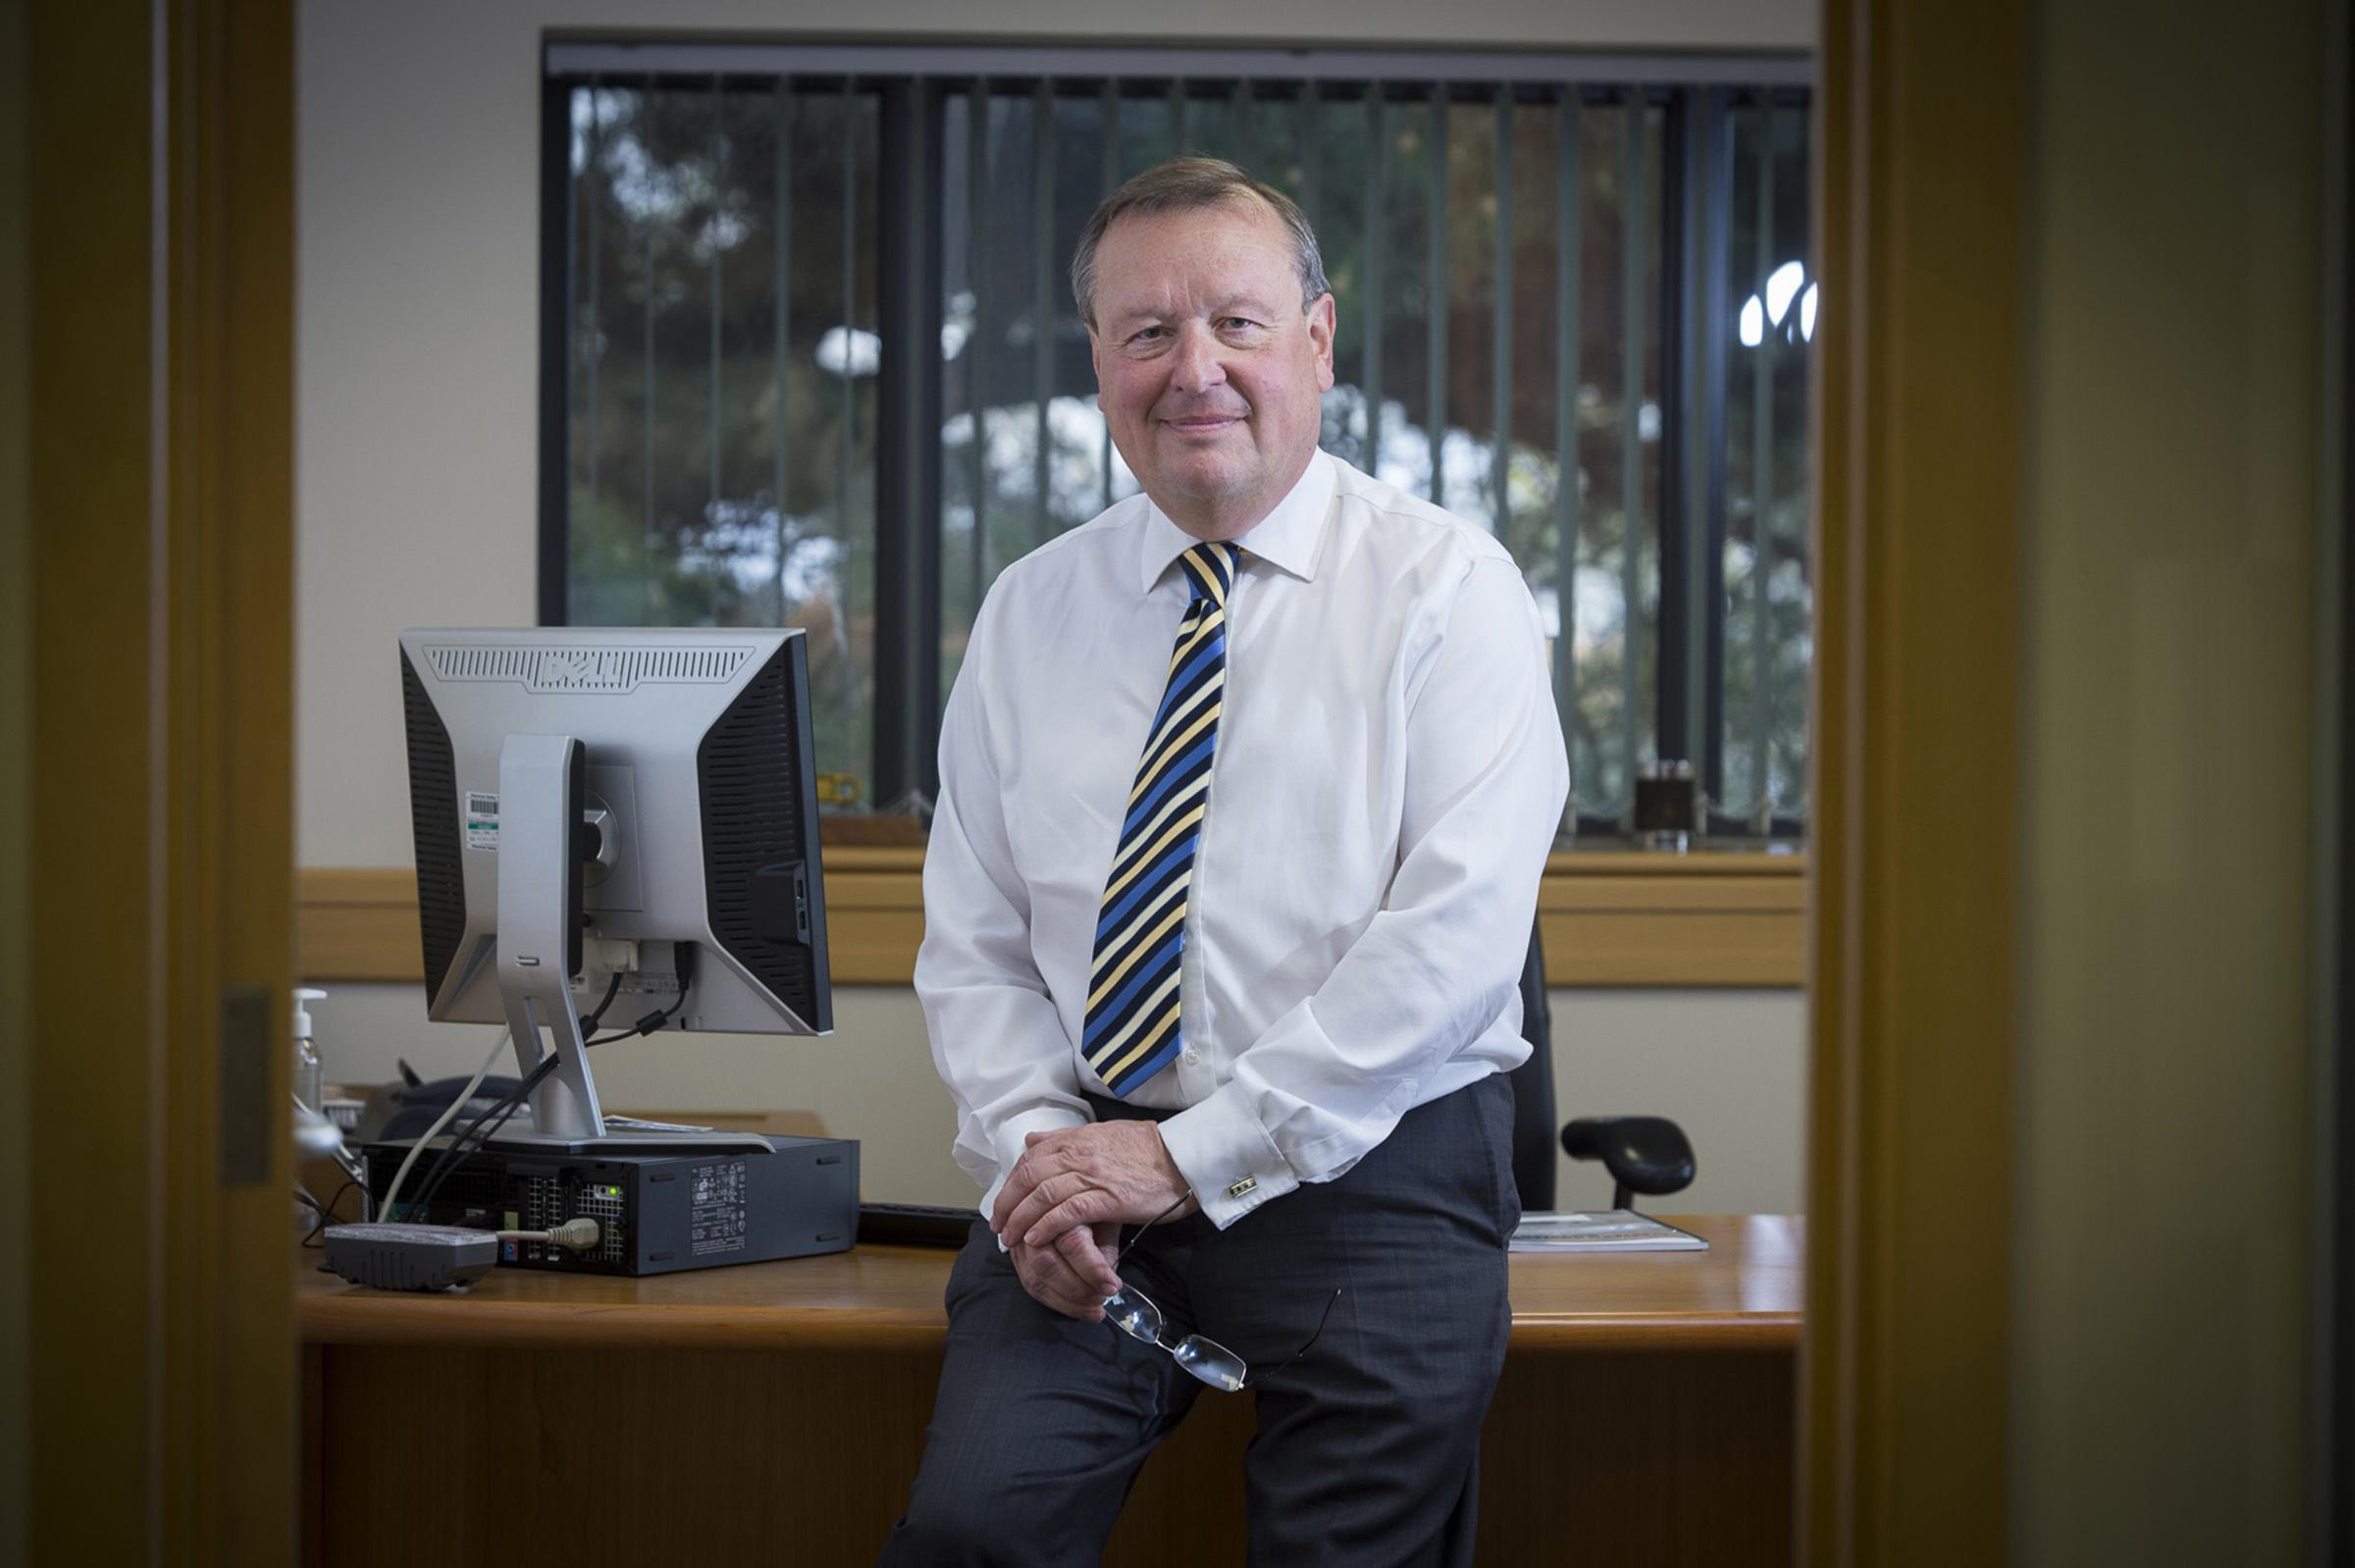 Robert Symons, Western Power Distribution's chief executive, who has died following a battle with cancer